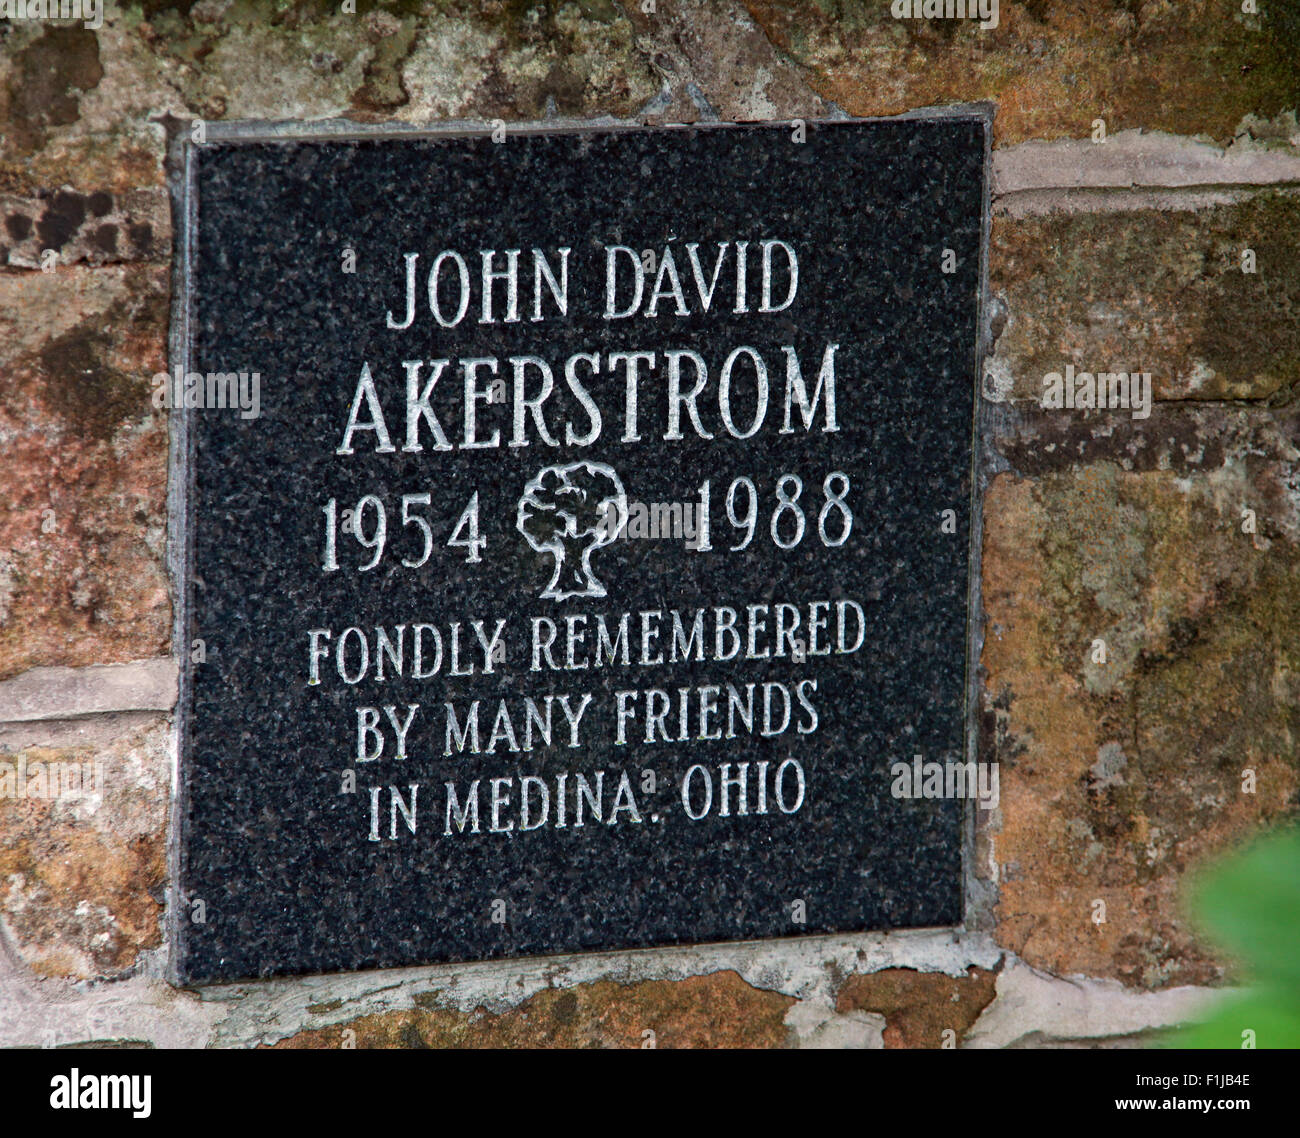 David Akerstrom,Scotland,Lodge,Visitors,Centre,DLVC,Trust,Lockerbie,Memorial,Scotland,Victims,Pan,Am,PanAm,flight,103,bomb,bombing,terrorist,December,1988,attack,crash,dead,site,21/12/1988,270,victims,Scottish,Town,conspiracy,blast,Tundergarth,Room,garden,of,Dryfesdale,Cemetery,news,New York,GoTonySmith,Lodge,Visitors,Centre,DLVC,Trust,Lockerbie,Memorial,Scotland,Victims,Pan,Am,PanAm,flight,103,bomb,bombing,terrorist,December,1988,attack,crash,dead,site,21/12/1988,270,victims,Scottish,Town,conspiracy,blast,Tundergarth,Room,garden,of,Dryfesdale,Cemetery,news,Cultural,understanding,remembering,innocent,transatlantic,Frankfurt,Detroit,Libyan,Libya,Colonel Muammar Gaddafi,civil,case,compensation,terrorism,PA103,30,30years,years,Syracuse,University,SU,family,collections,Story,Archive,Archives,40,35,Timeline,saga,disaster,air,Scholars,program,programs,remembrance,Clipper Maid of the Seas,N739PA,Boeing,727,plane,aircraft,Scotland,UK,United Kingdom,GB,Great Britain,resting,place,Buy Pictures of,Buy Images Of,New York,al megrahi,30 Years